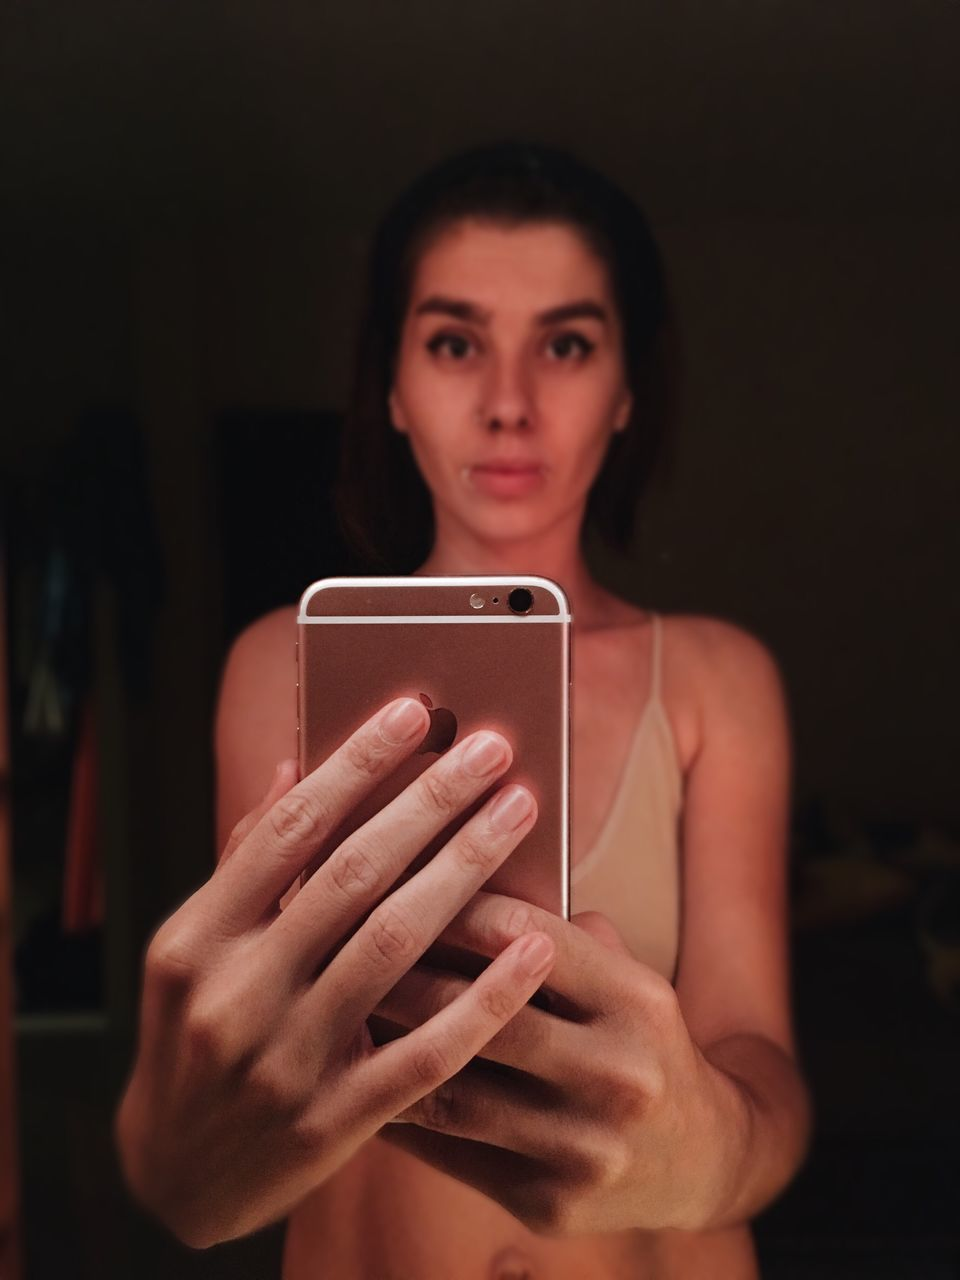 real people, waist up, front view, wireless technology, young adult, holding, one person, focus on foreground, portable information device, leisure activity, indoors, young women, beautiful woman, mobile phone, lifestyles, portrait, standing, looking at camera, studio shot, night, selfie, close-up